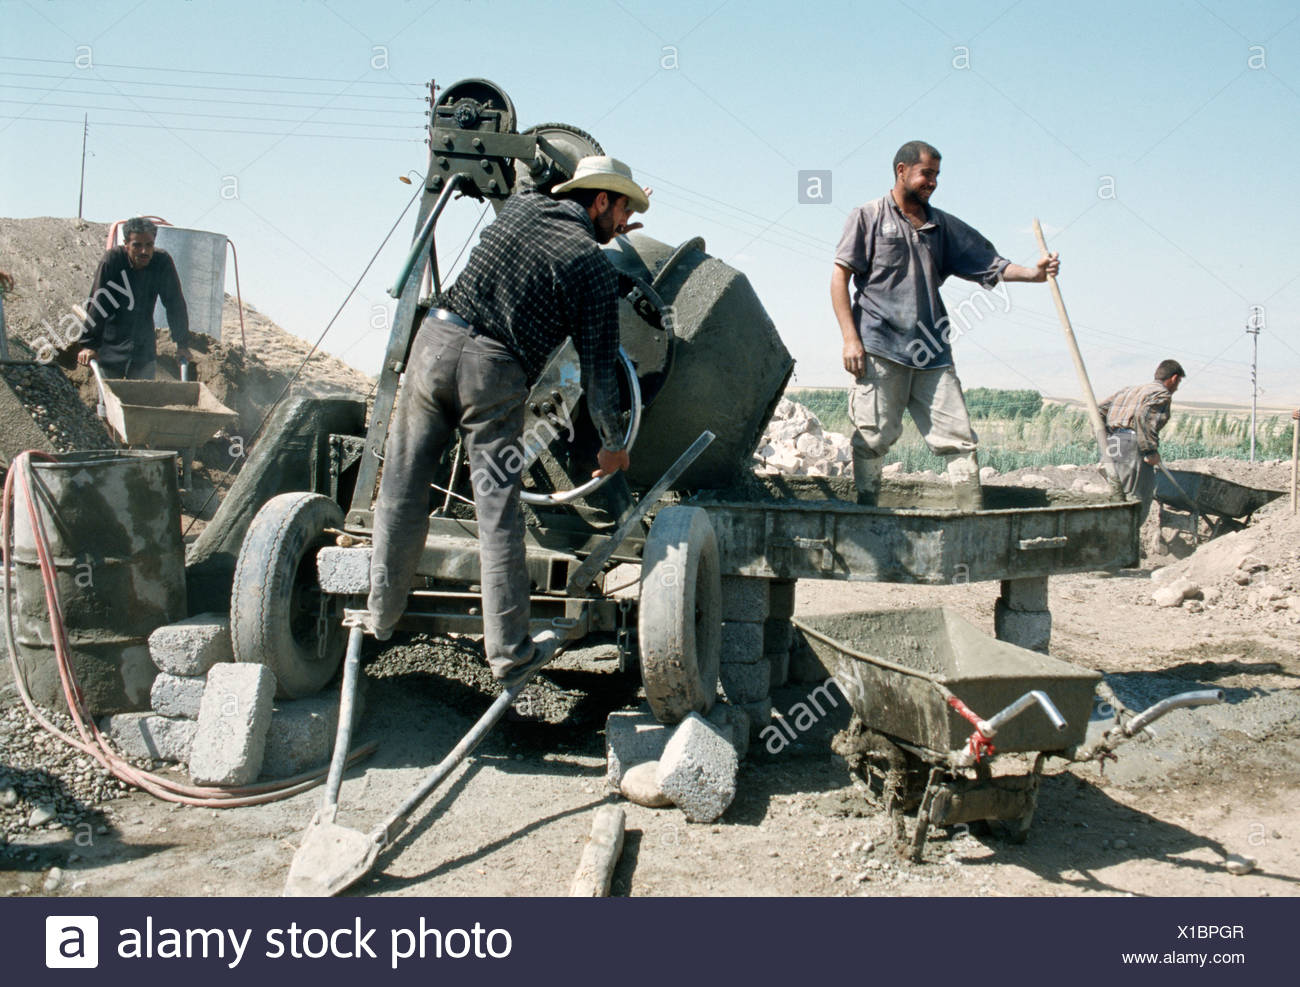 Kurdish workers with cement mixer Kurdistan Iraq 2004 Stock